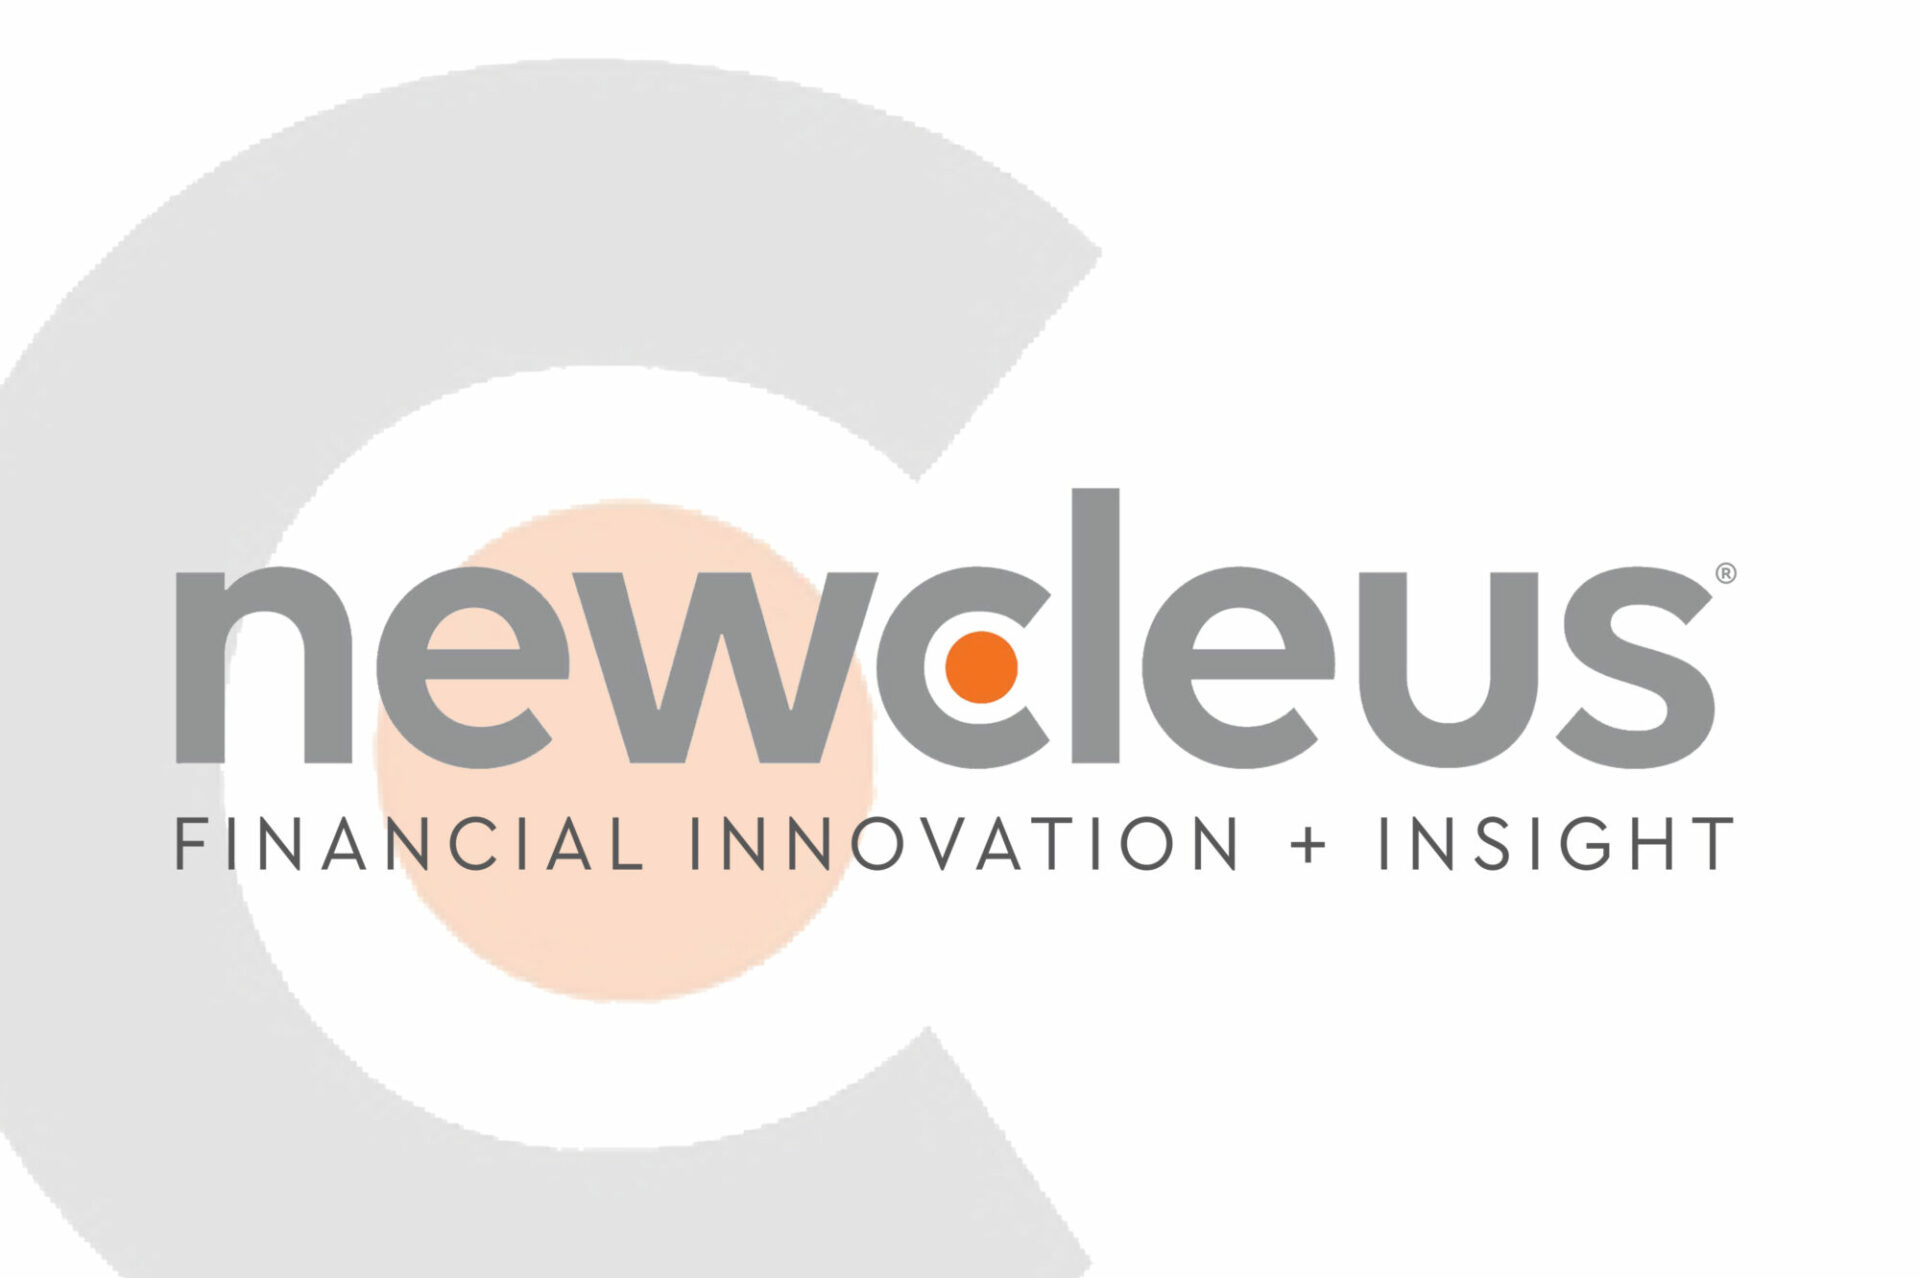 Newcleus Completes its Combination and Rebranding Strategies